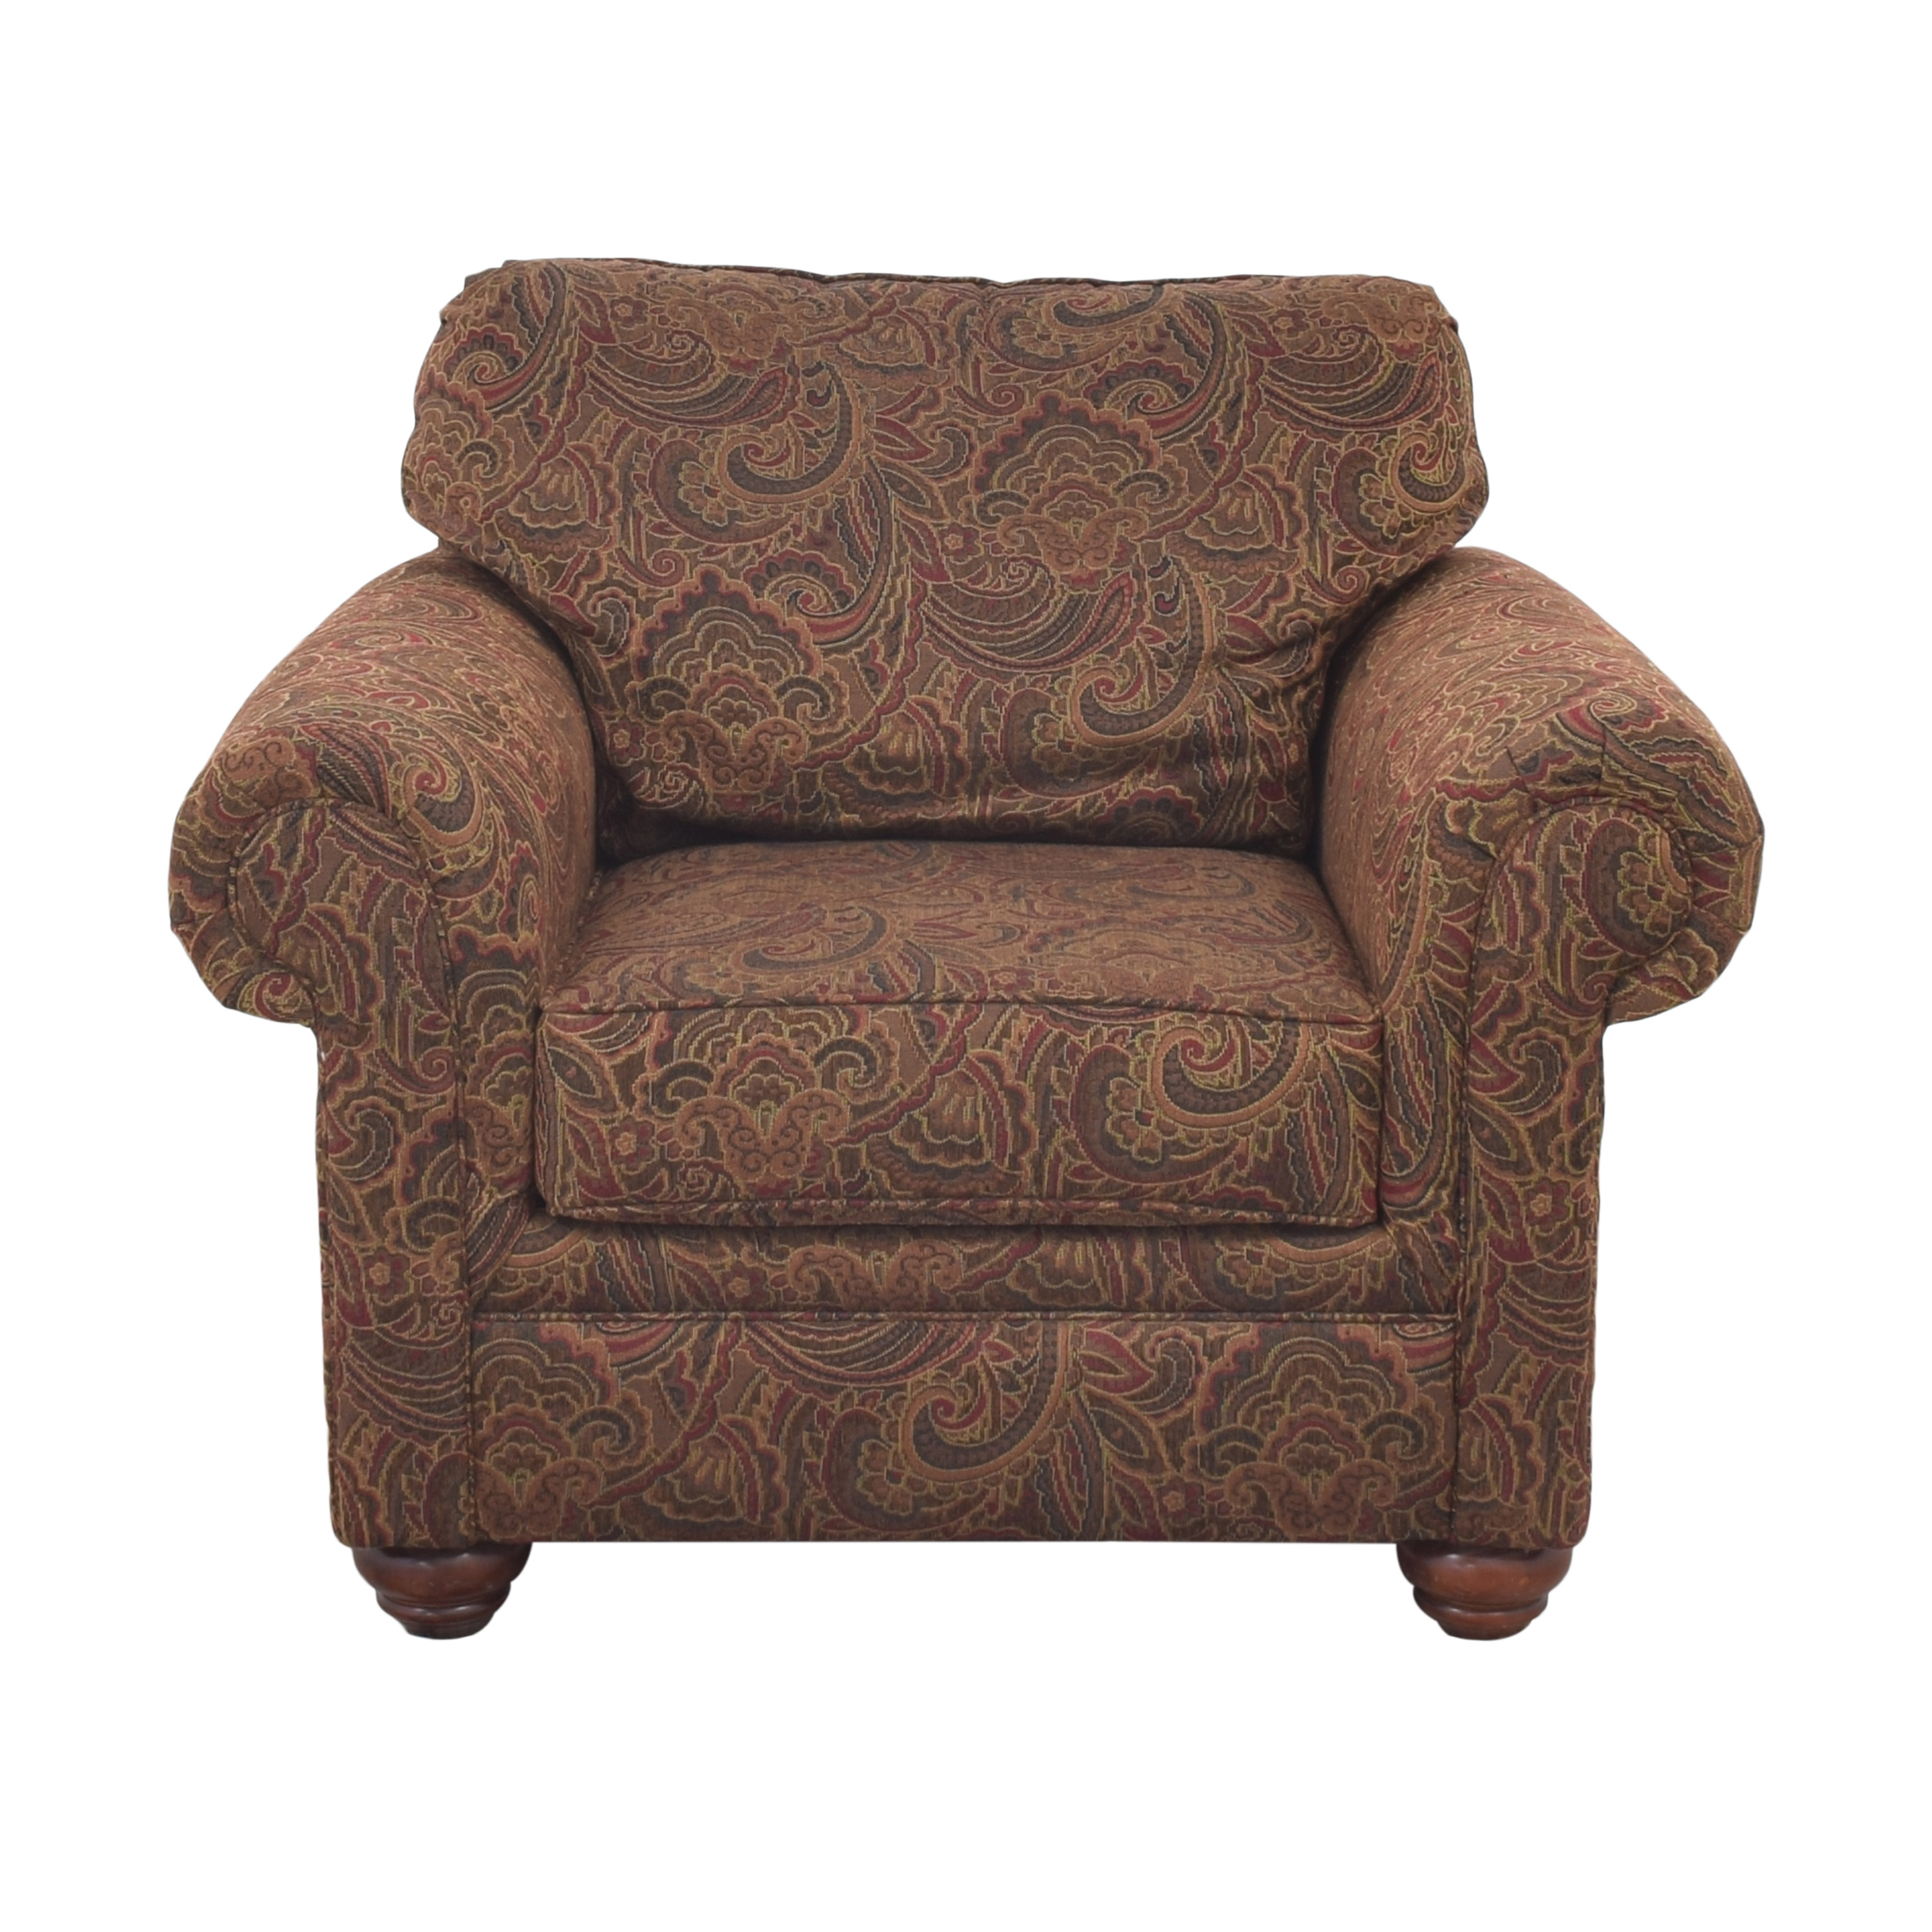 Broyhill Furniture Broyhill Furniture Roll Arm Accent Chair and Ottoman coupon